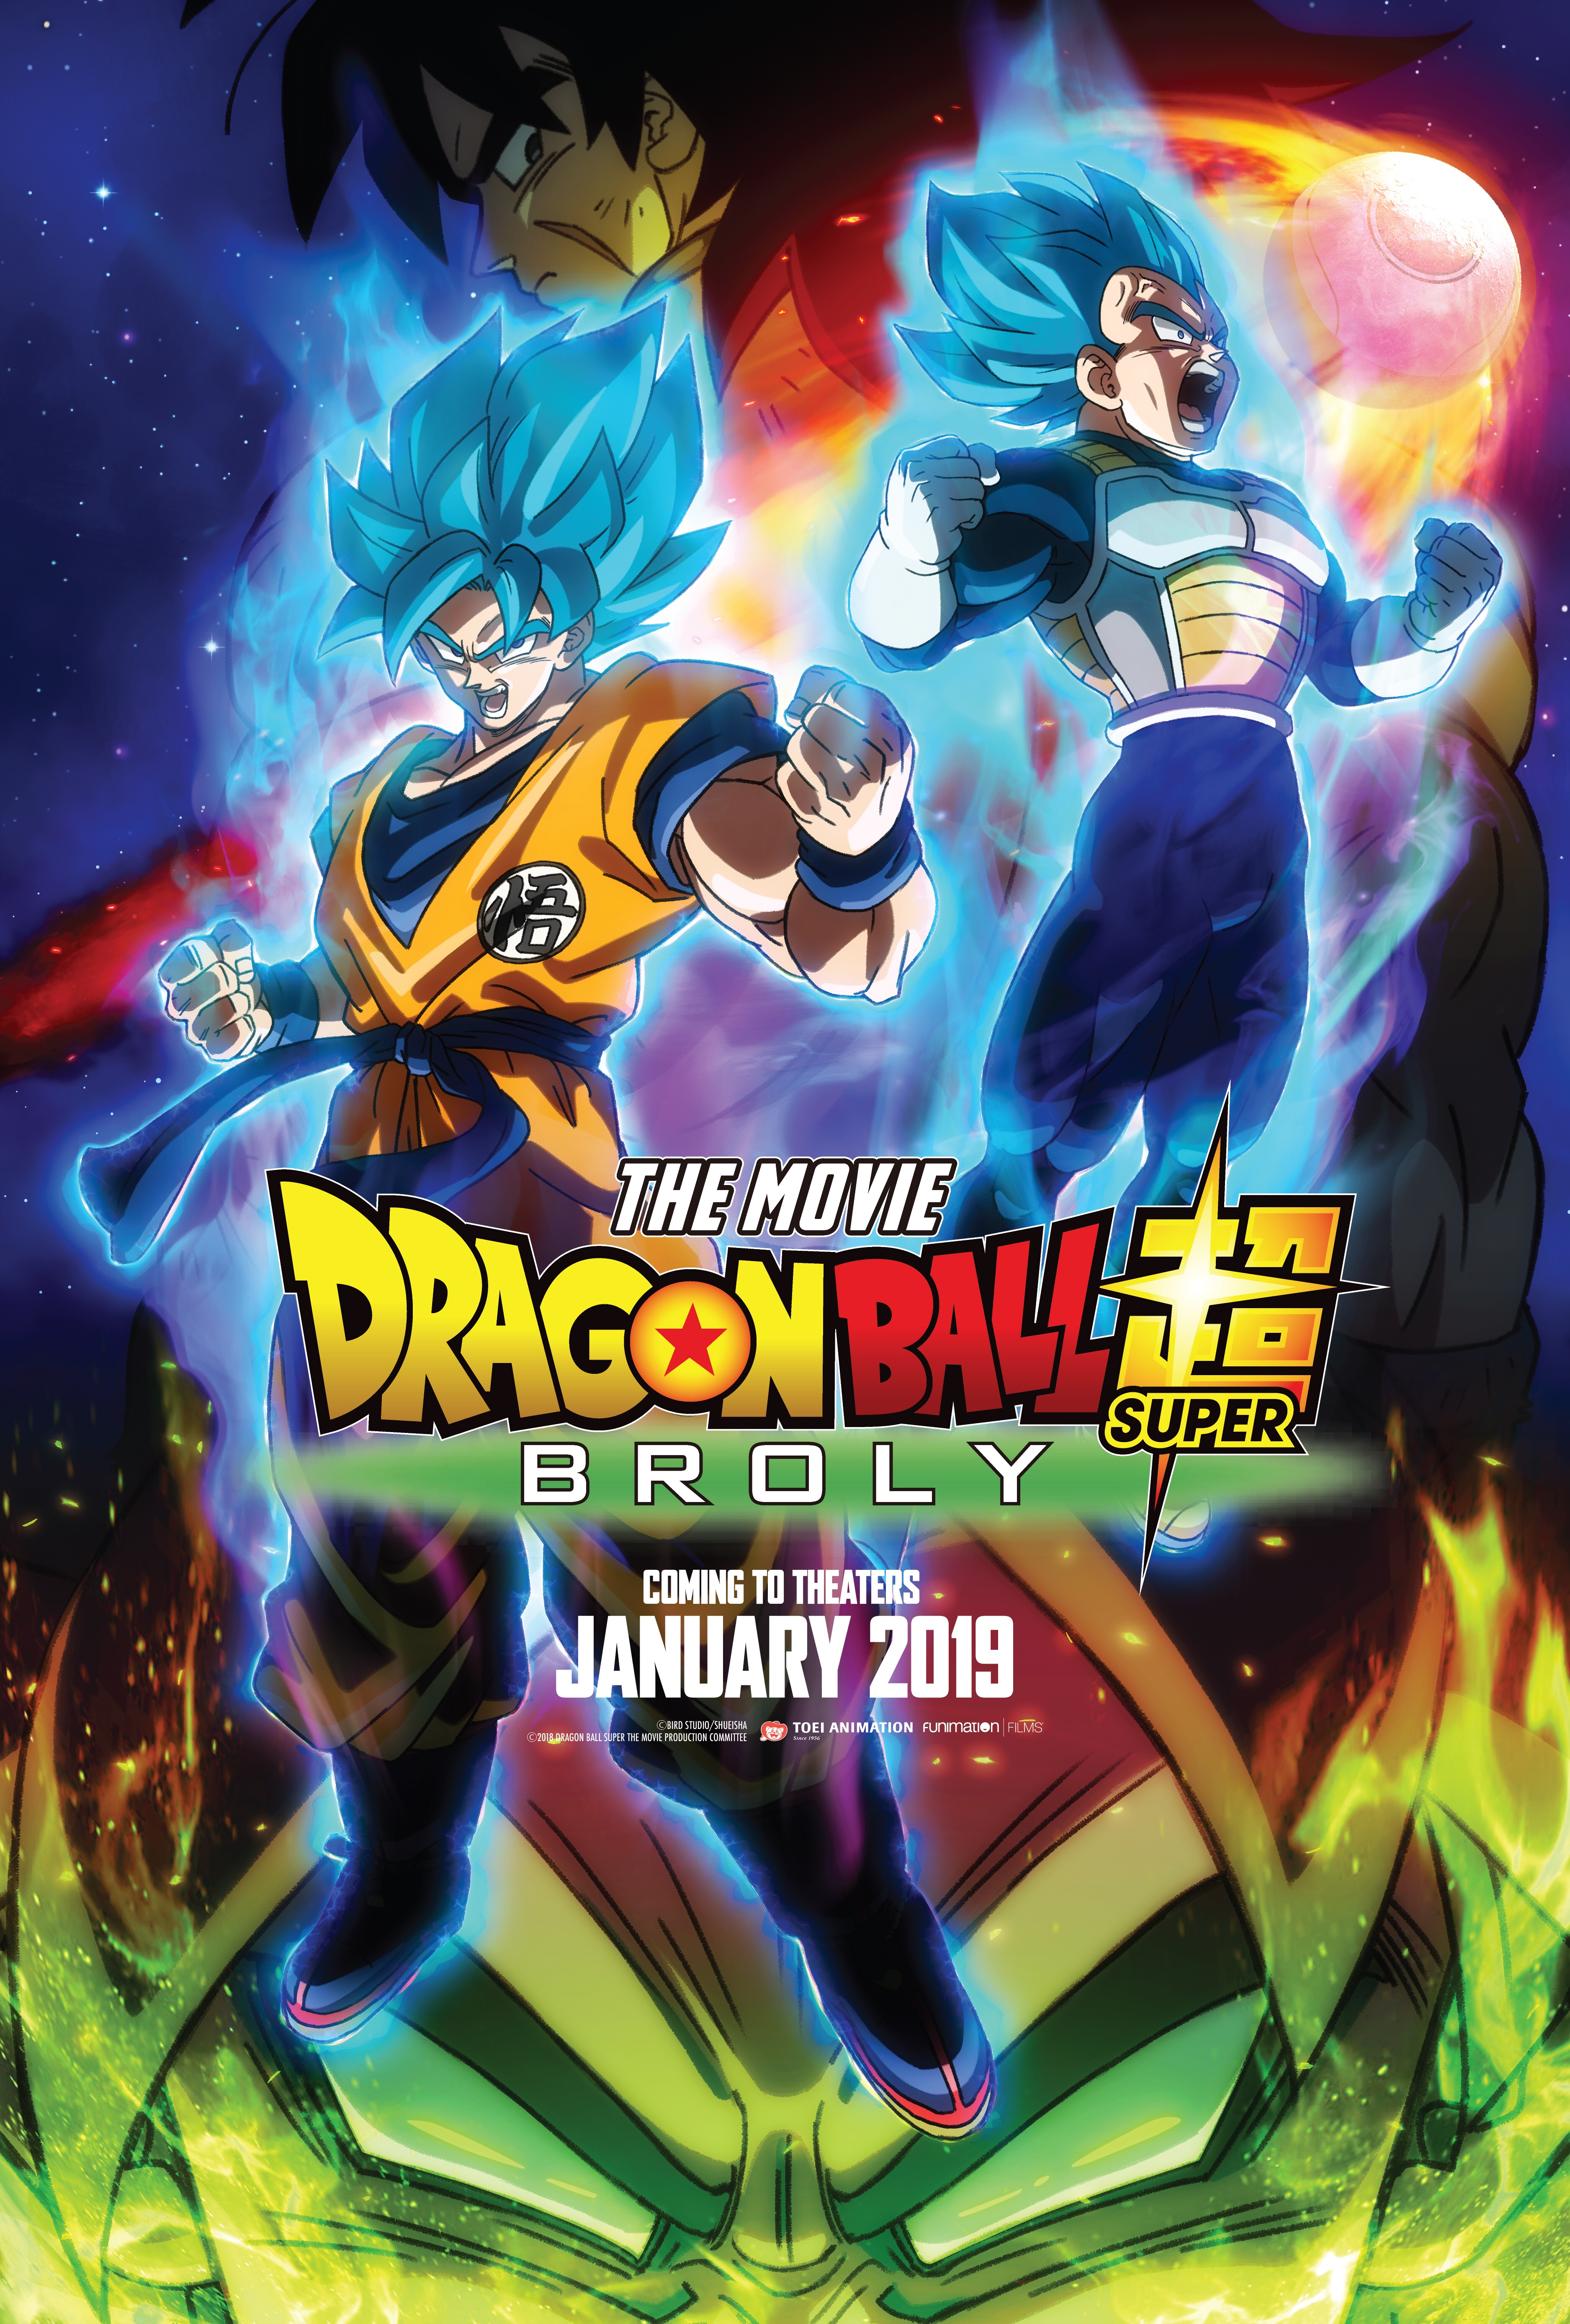 BREAKING NEWS: FUNIMATION ACQUIRES NEW DRAGON BALL SUPER MOVIE FOR THEATRICAL DISTRIBUTION JANUARY 2019 IN U.S. AND CANADA